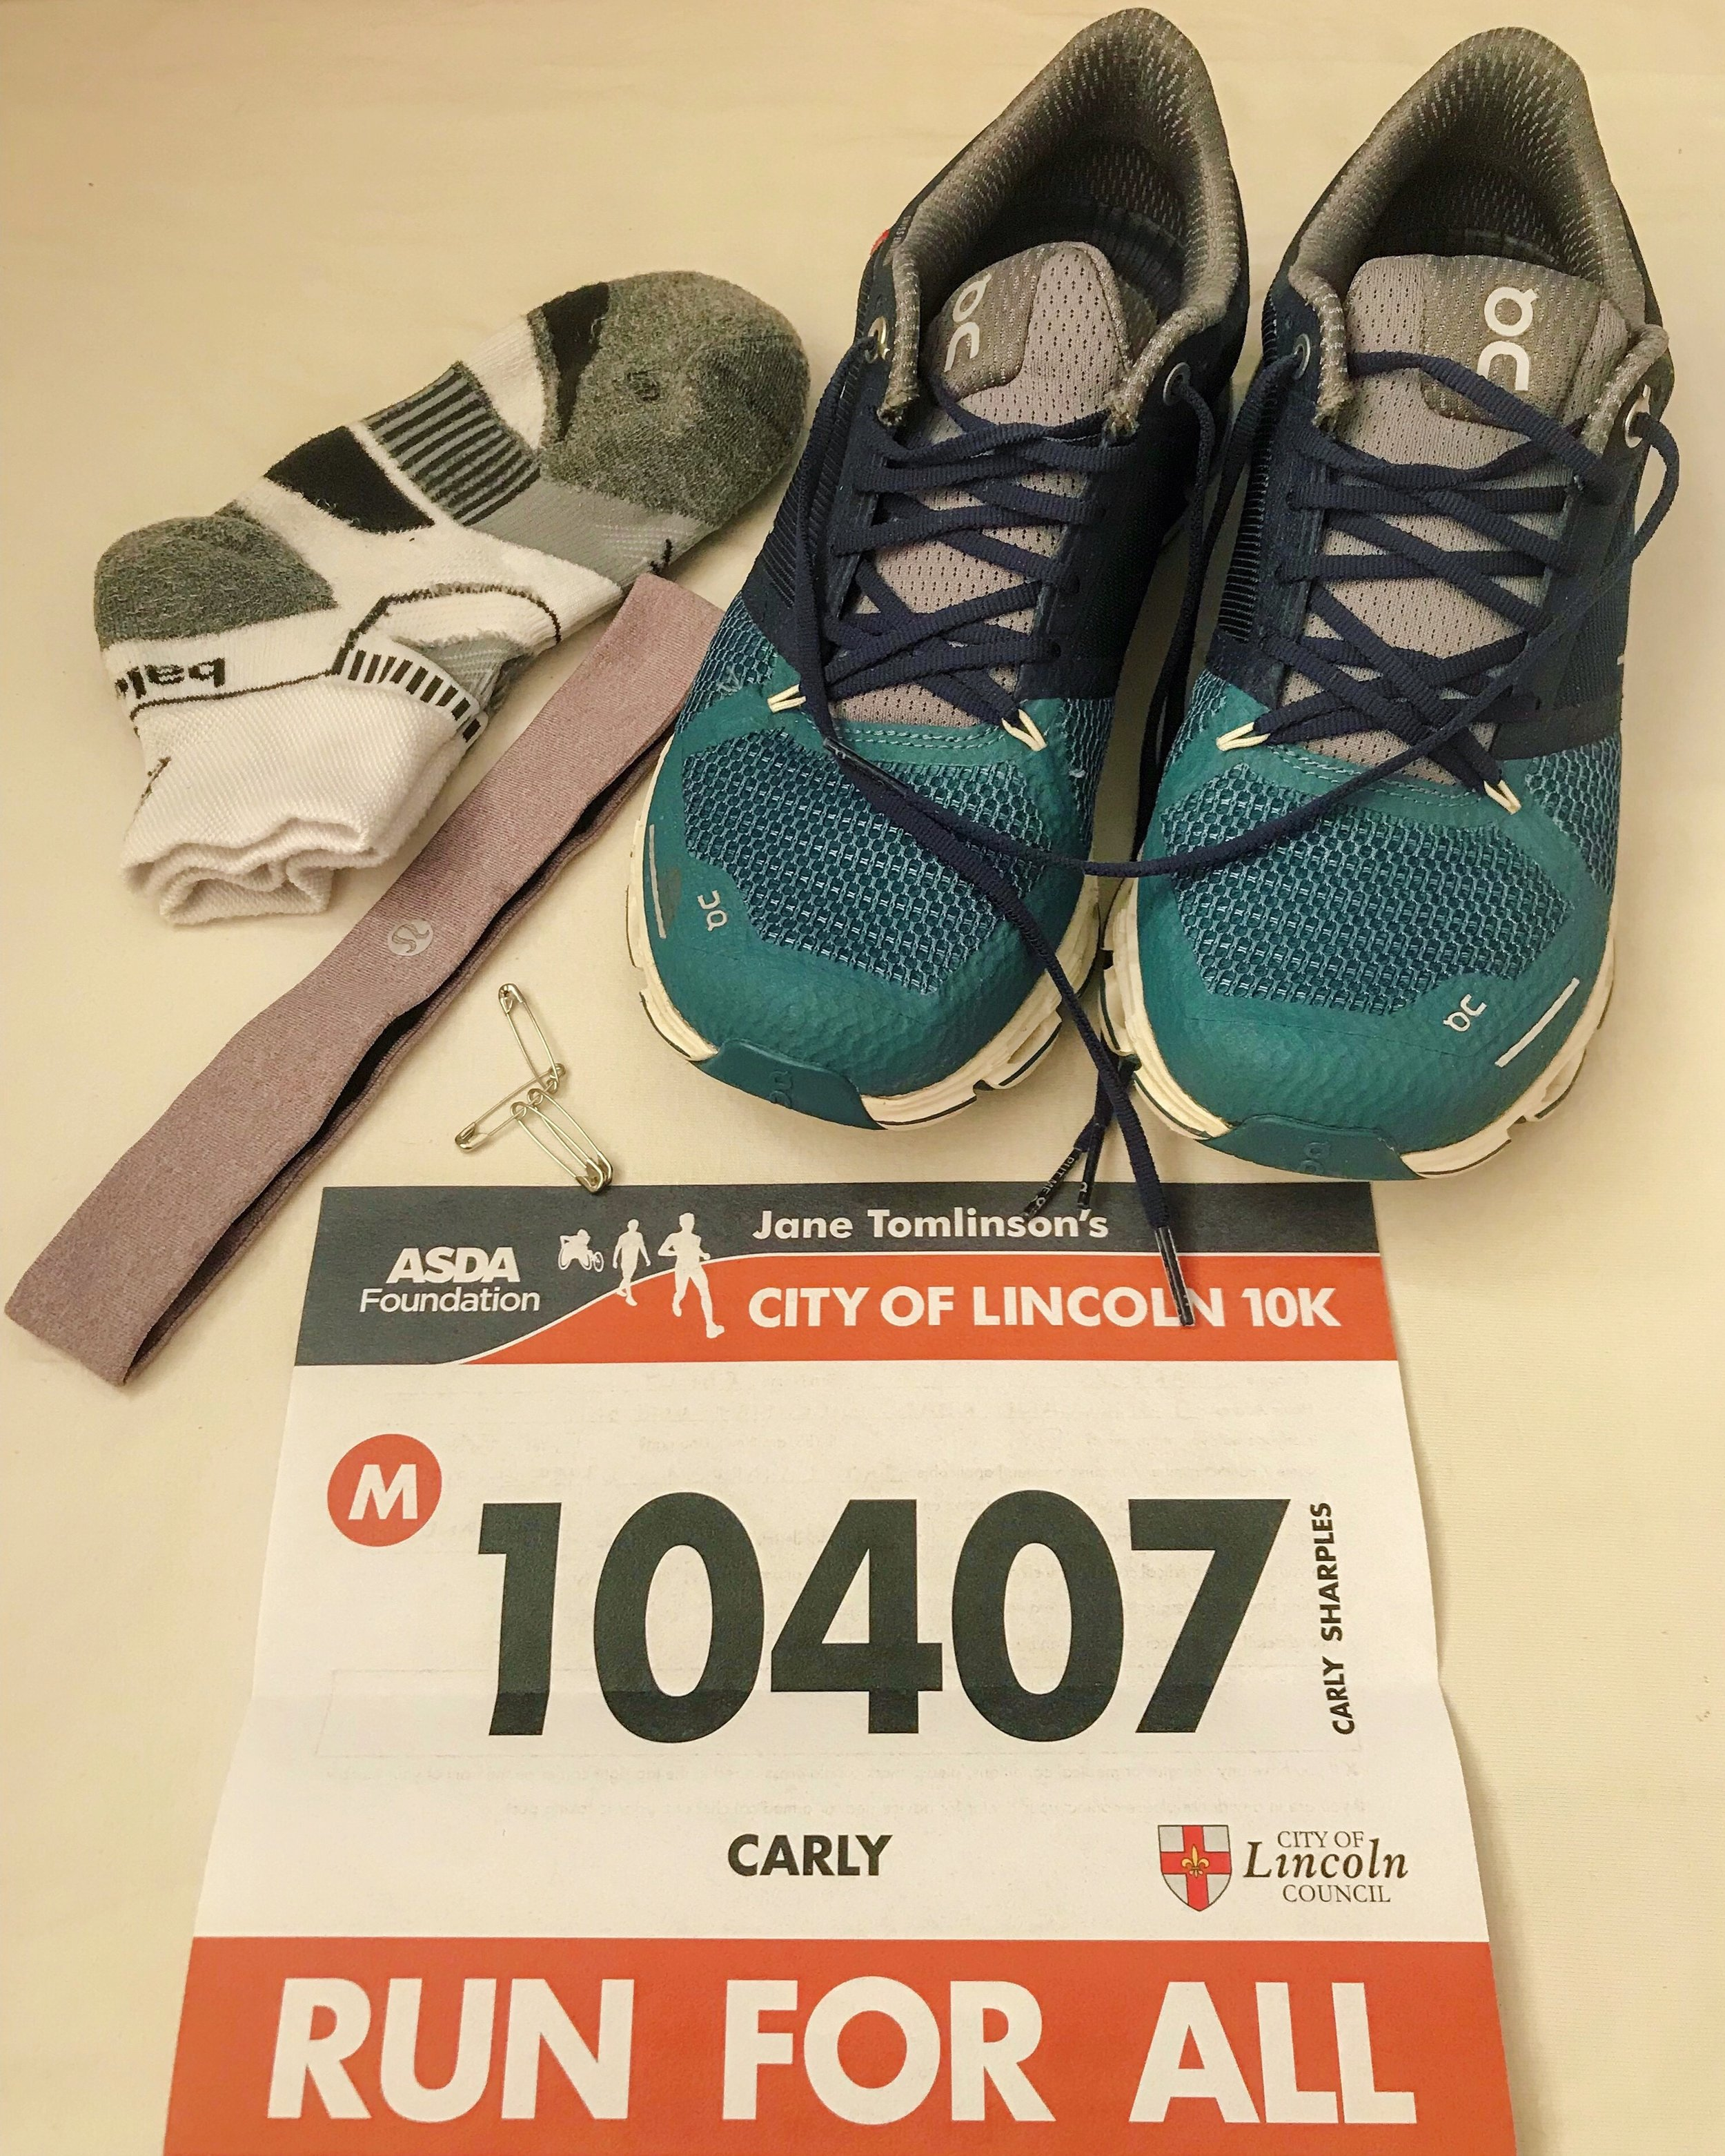 Getting ready to face my nemesis: the Lincoln 10km race